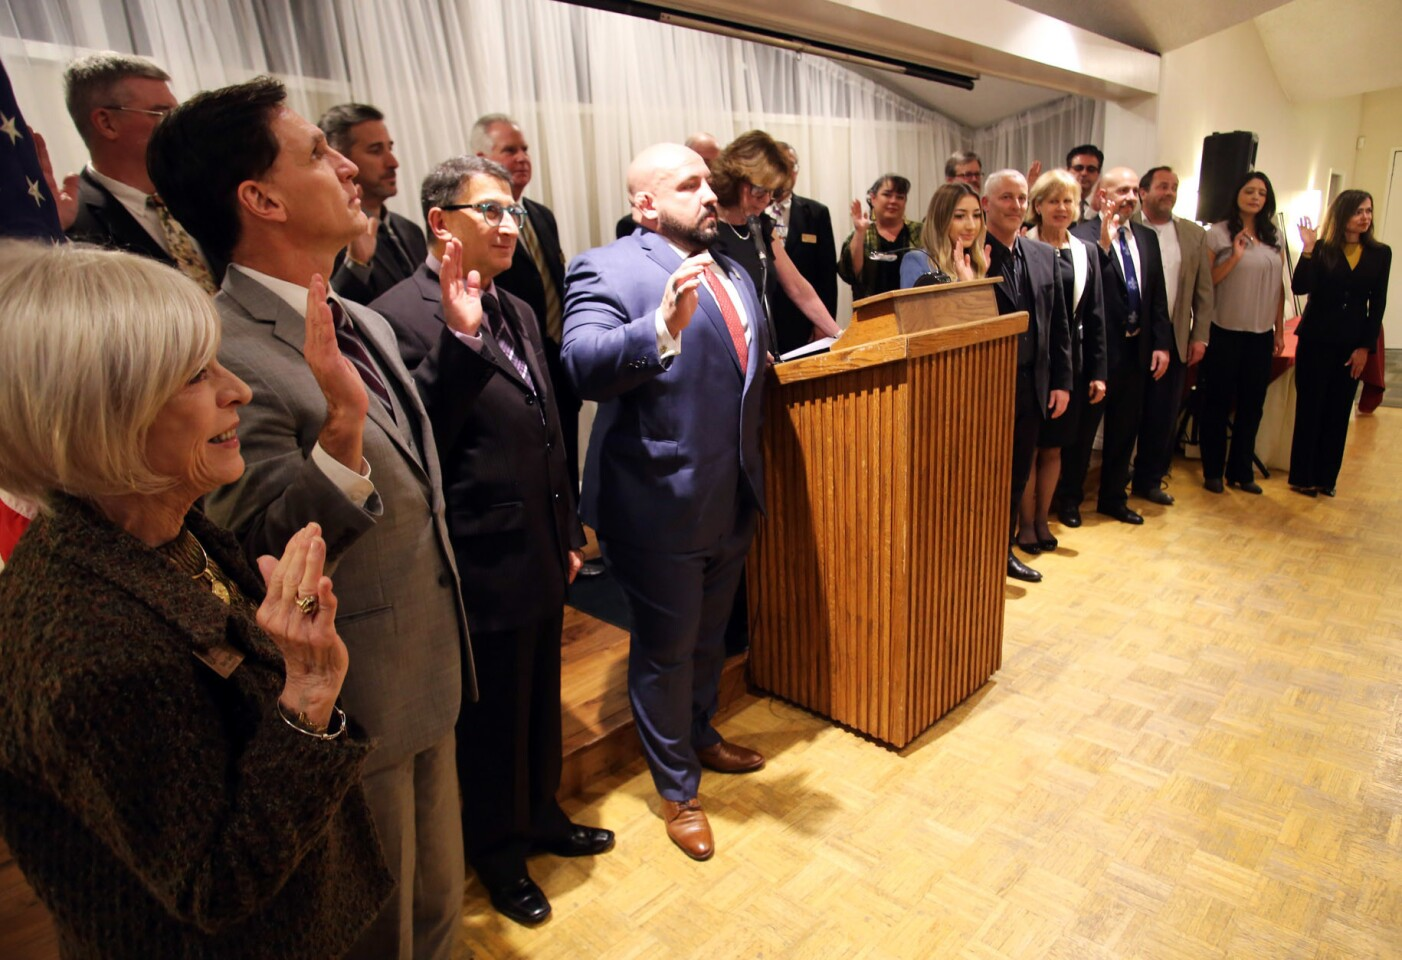 Installation of the 2019 Officers and Directors raise their right hand as they are sworn in during the La Cañada Flintridge Chamber of Commerce and Community Association 107th Installation and Awards Gala at the La Cañada Flintridge Country Club on Thursday.